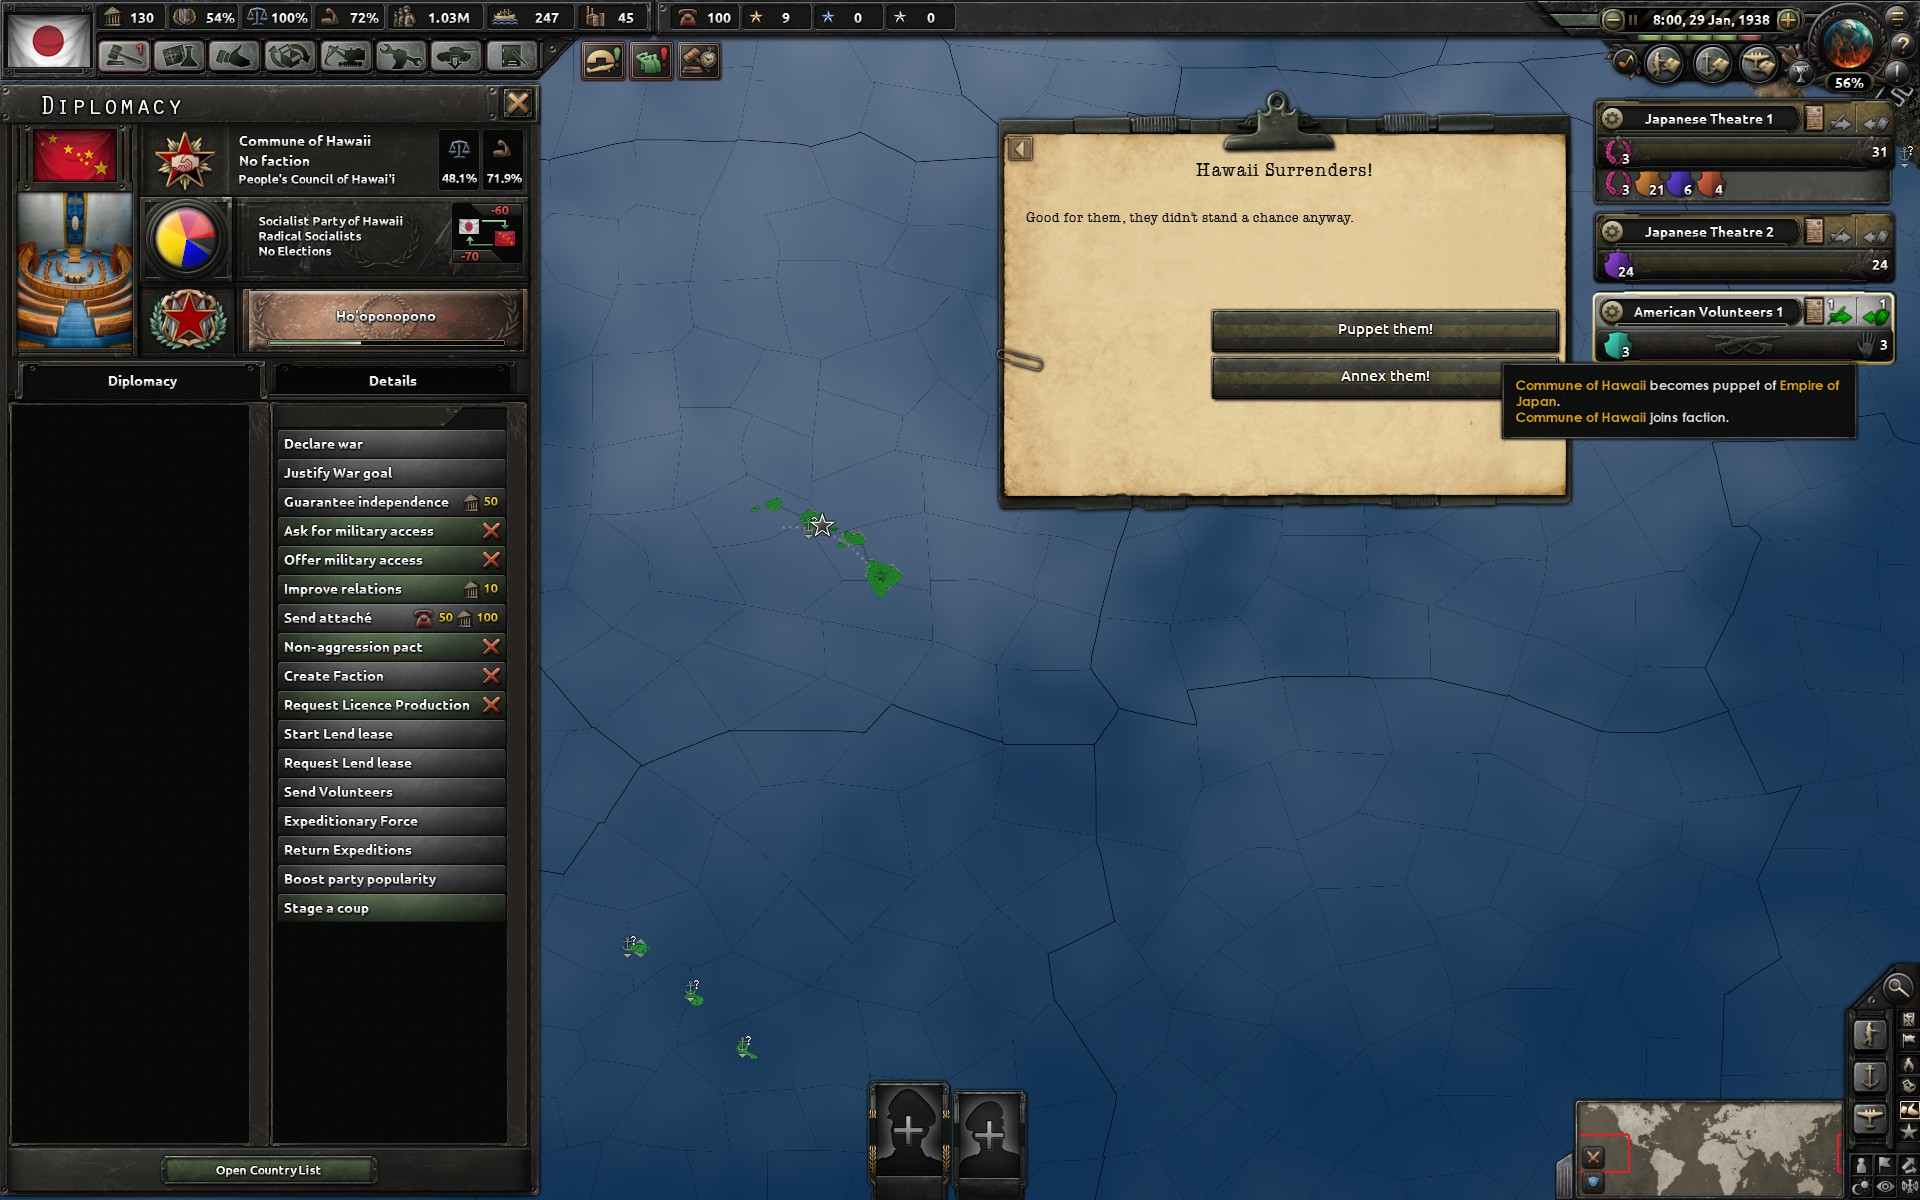 Hawaii as Japanese puppet is a bit syndie · Issue #3224 · KR4